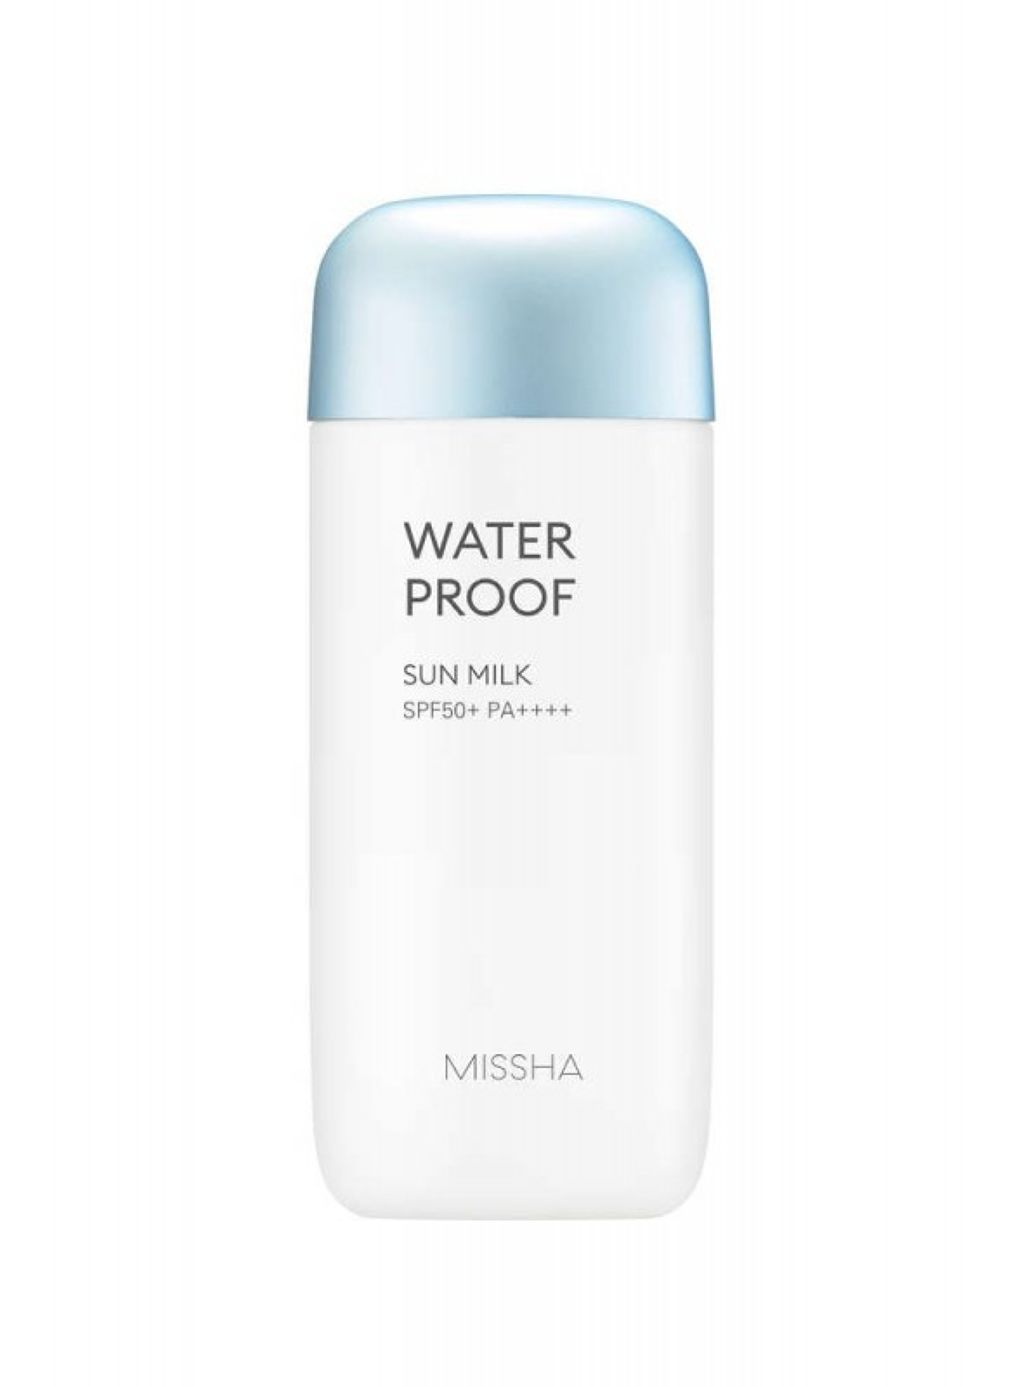 MISSHA ALL AROUND SAFE BLOCK WATERPROOF SUN MILK SPF50+ PA++++ - dd689-all-around-safe-block-waterproof-sun-milk-spf50-pa.jpg